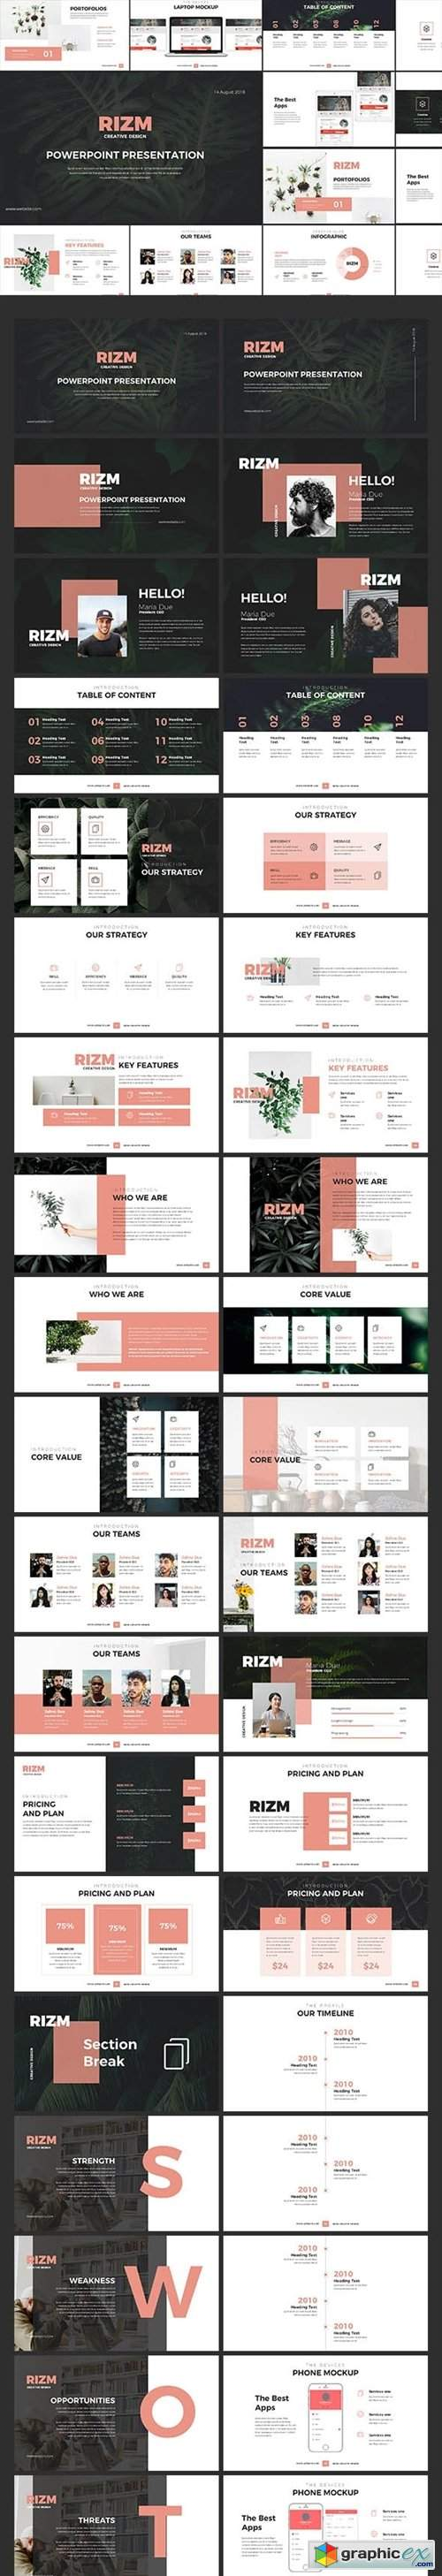 Rizm Powerpoint Templates